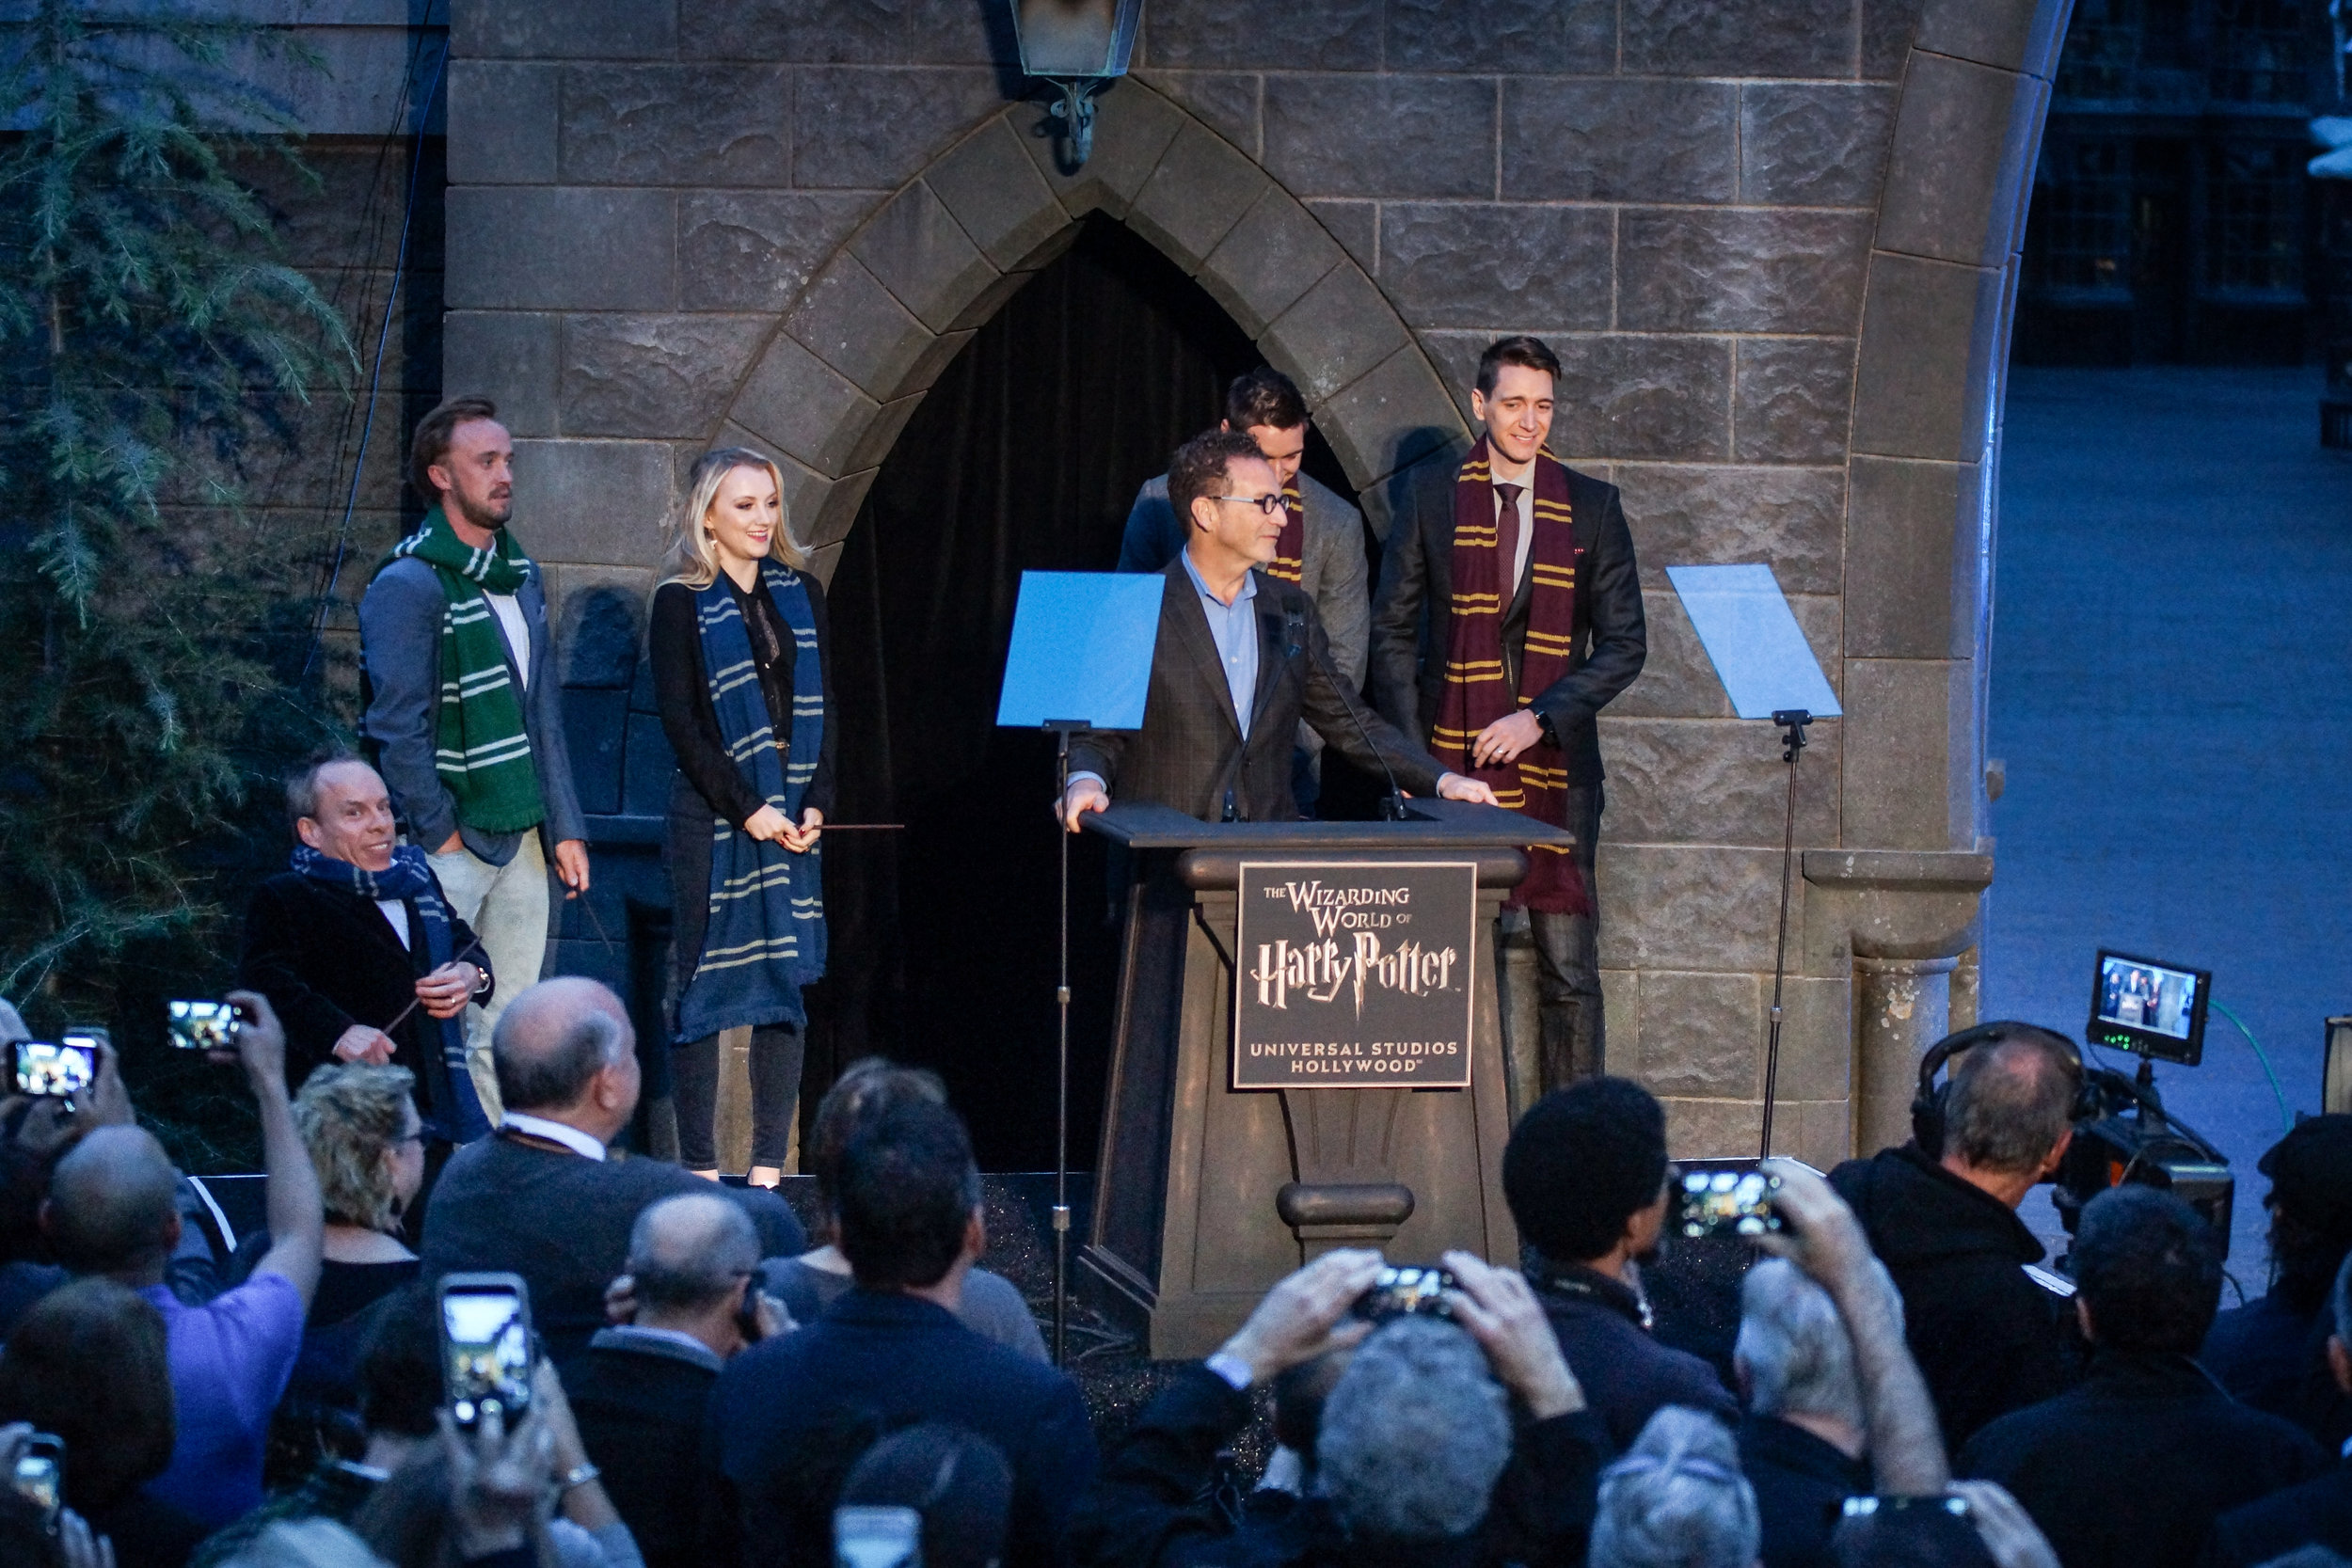 HarryPotterOpening-00998.jpg